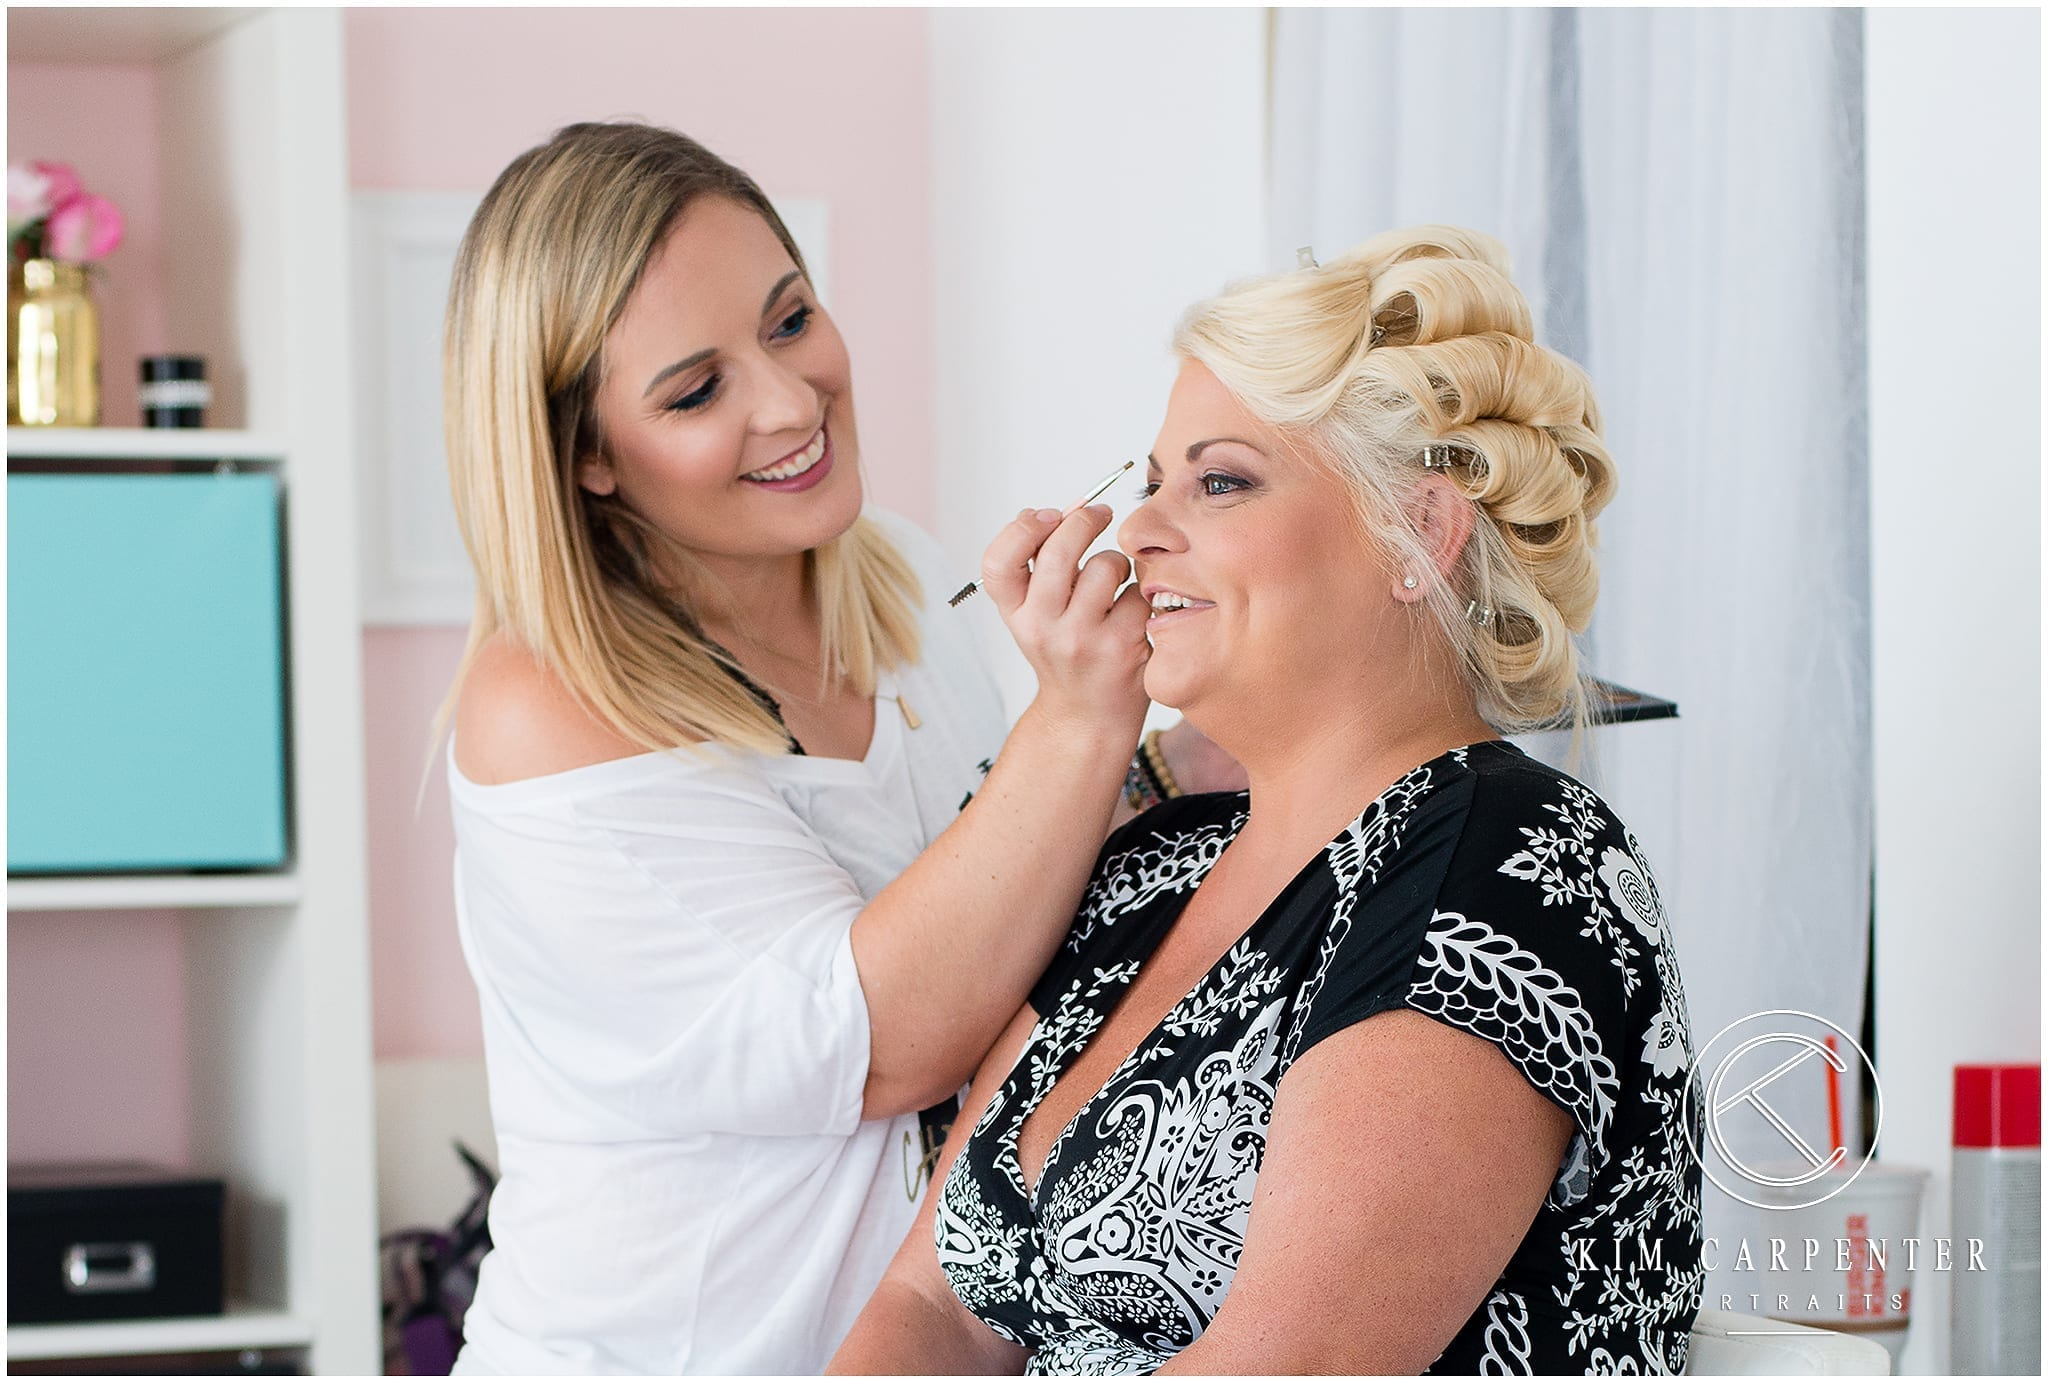 Woman with her hair in curlers getting her makeup done.